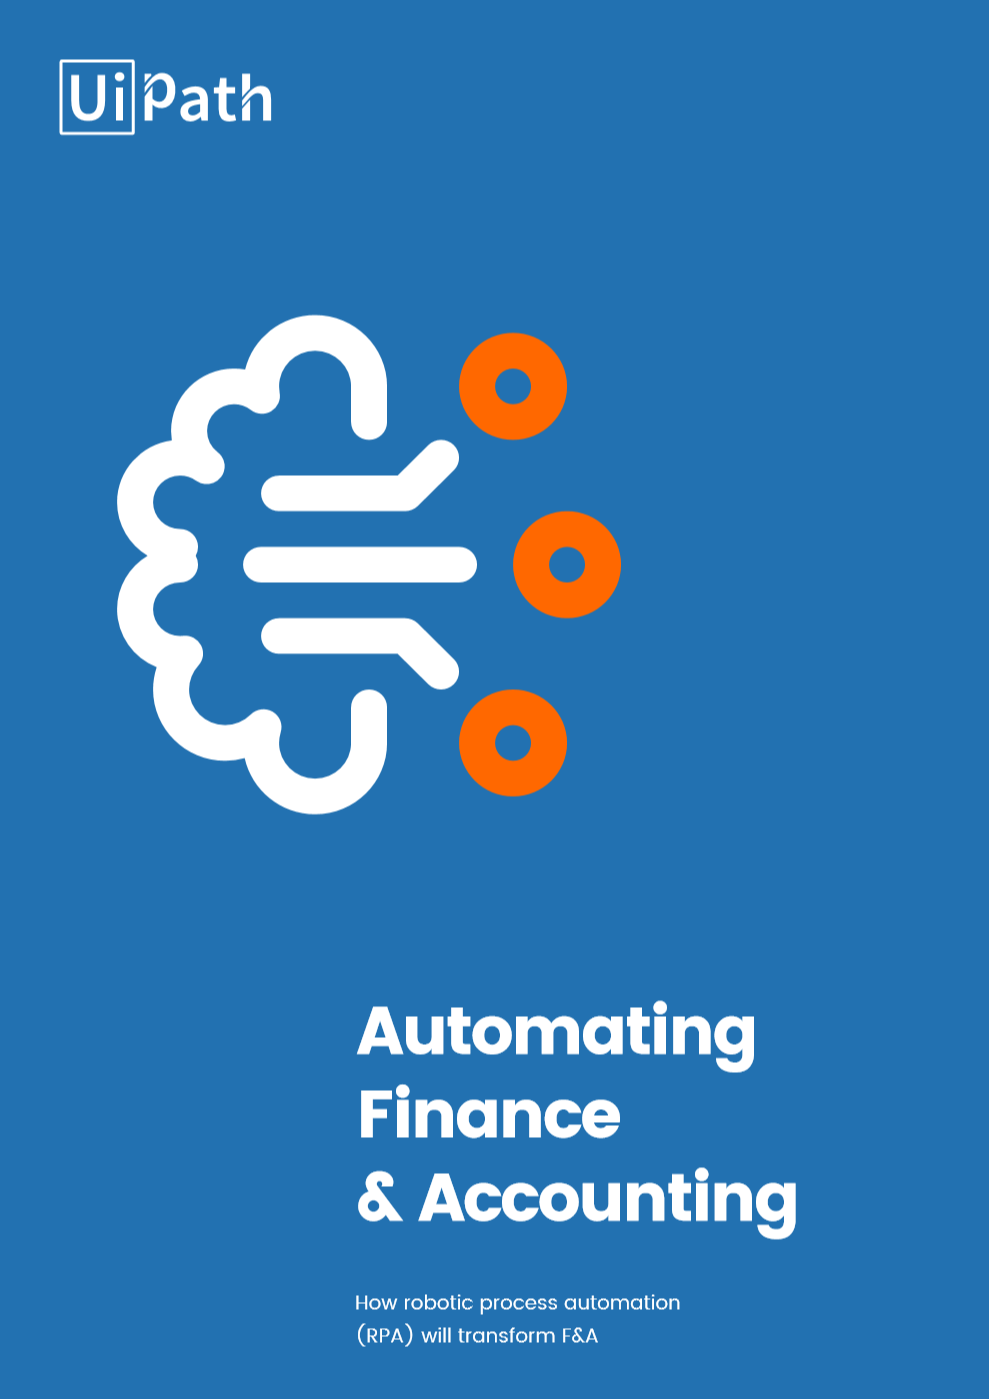 UiPath How RPA will Transform Finance and Accounting